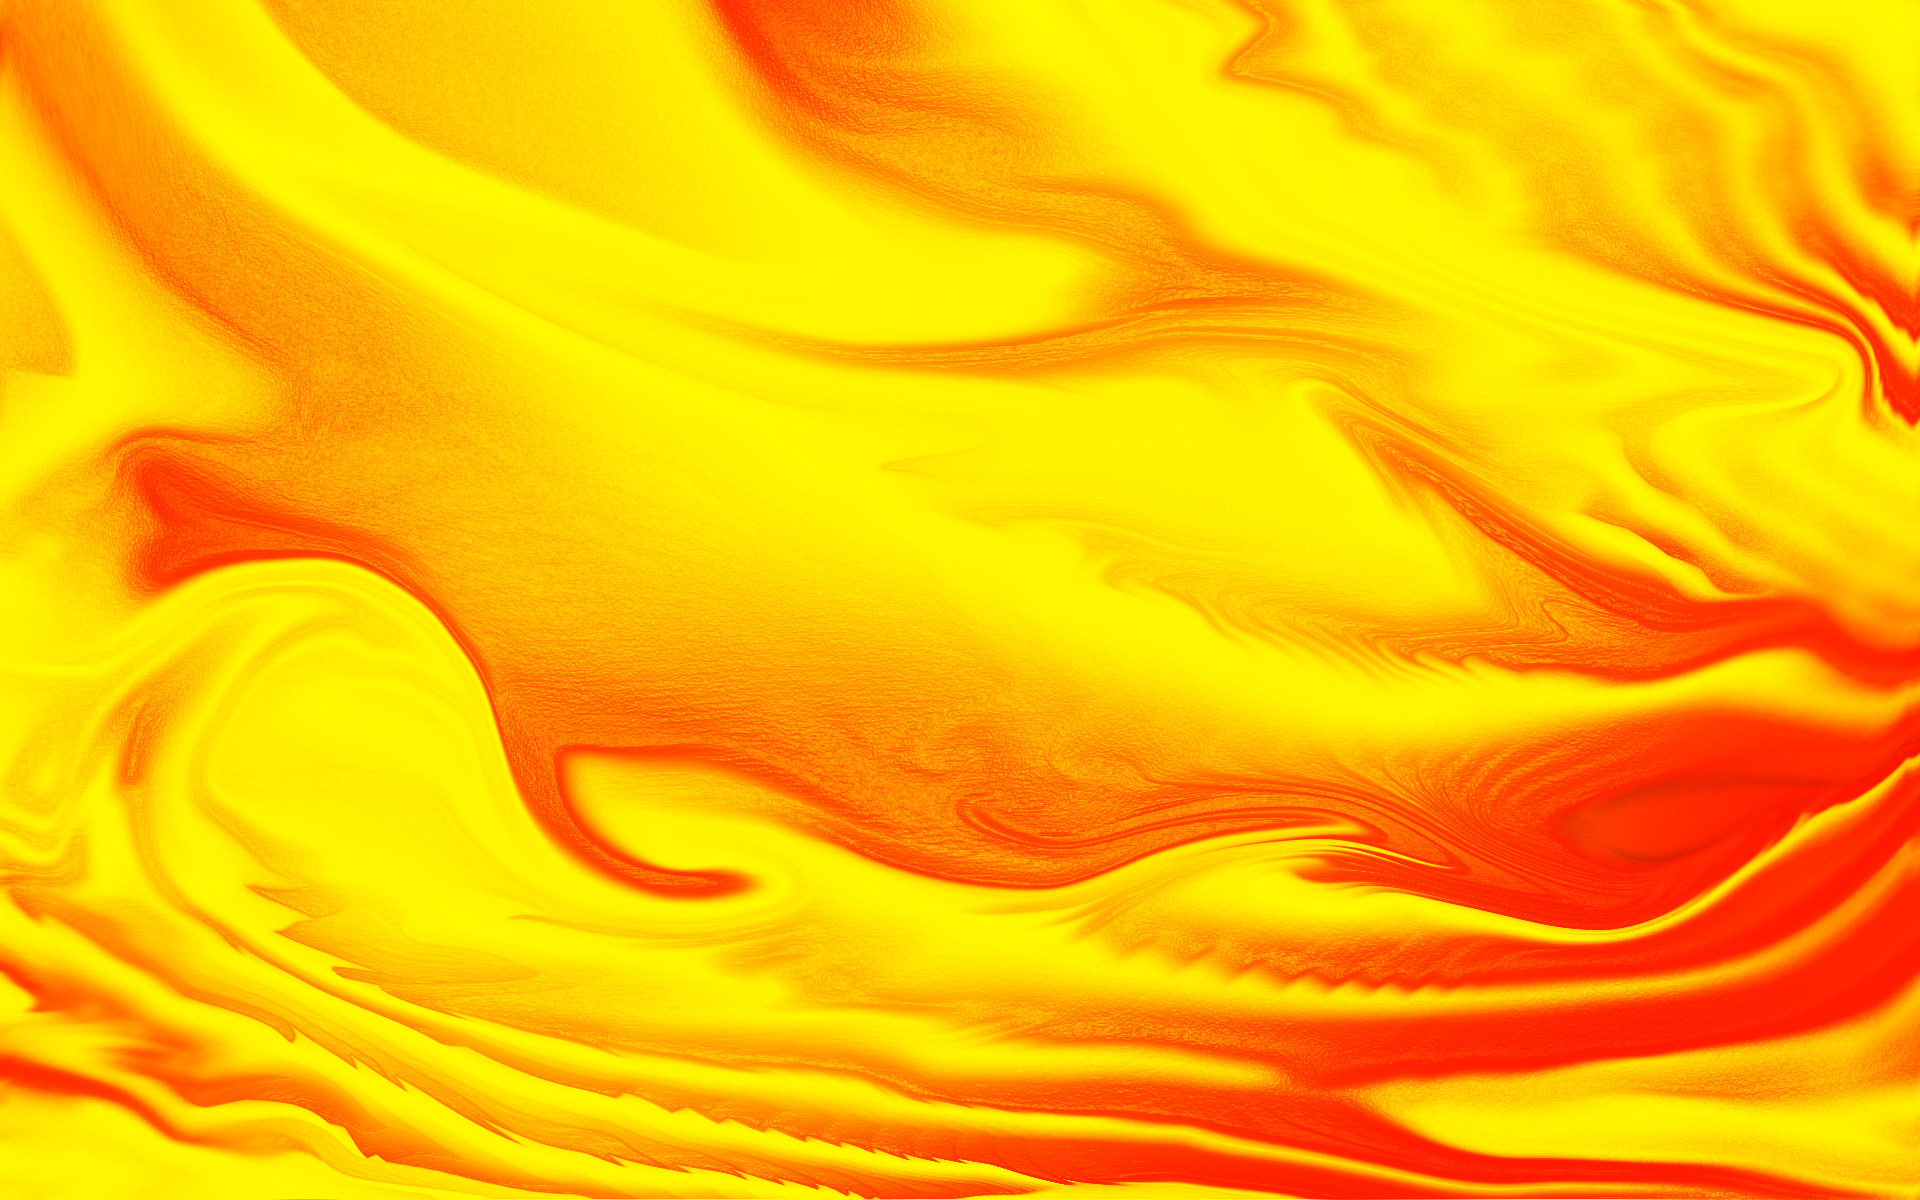 Red_Yellow_Lava_Storm_HD_Background.jpg?m=1399676400.